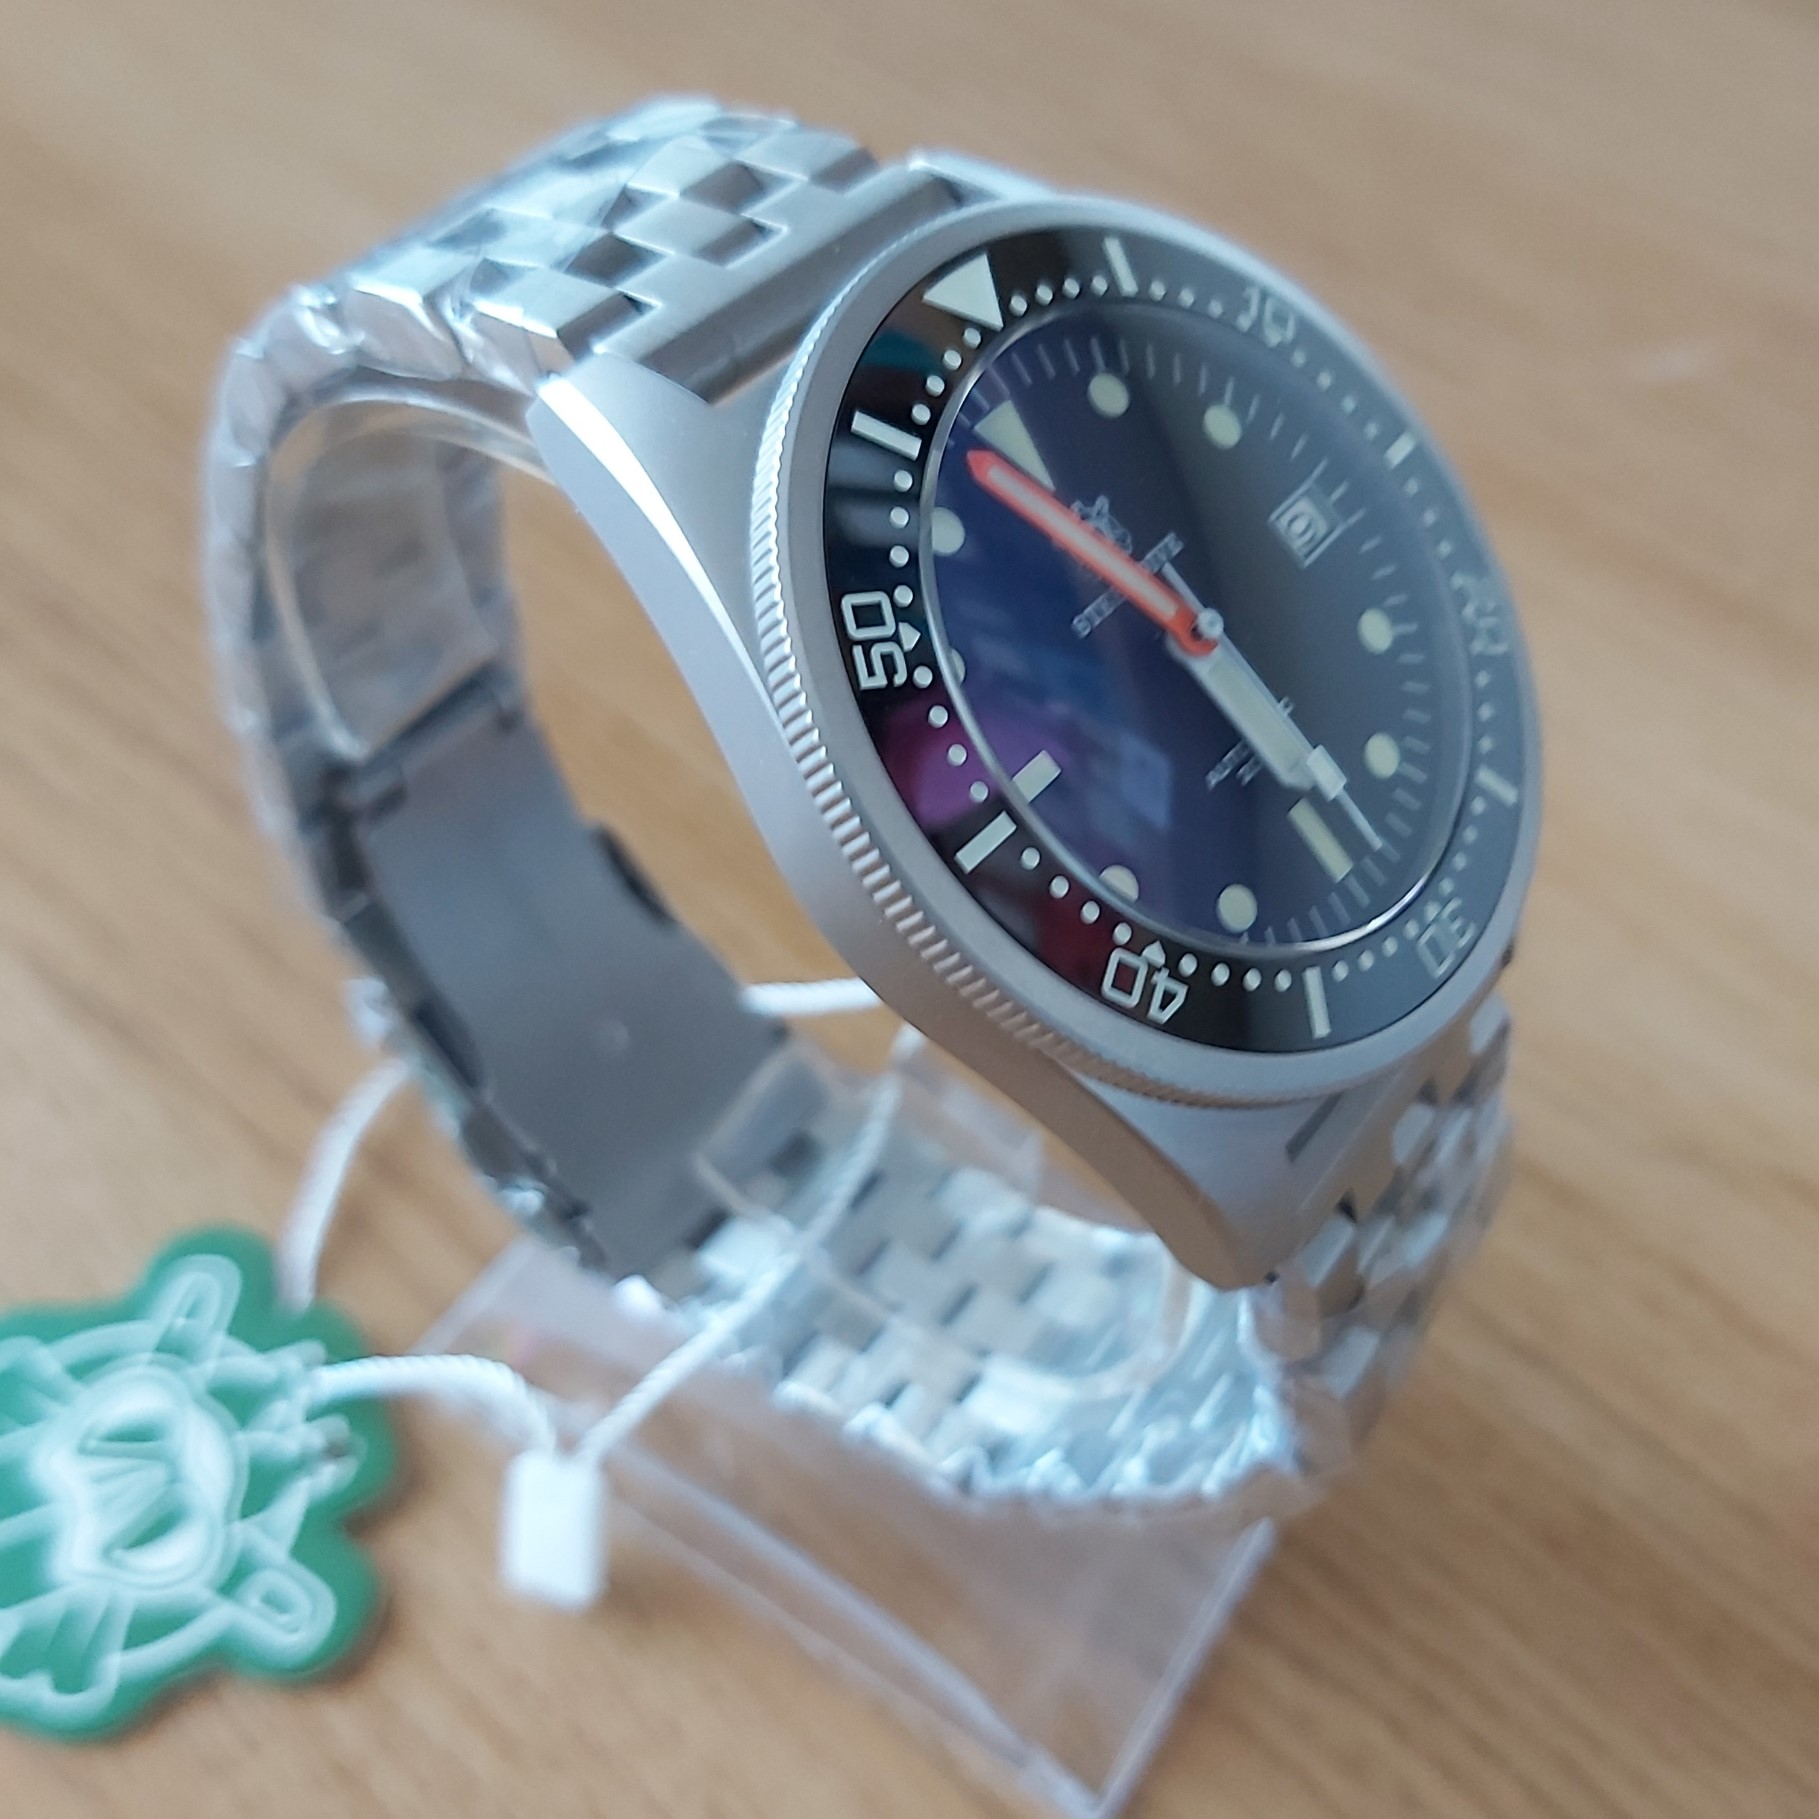 "Steeldive SD1979 2020 Version 200M Diver's Watch - The SQUALE ""50 Atmos"" Homage"